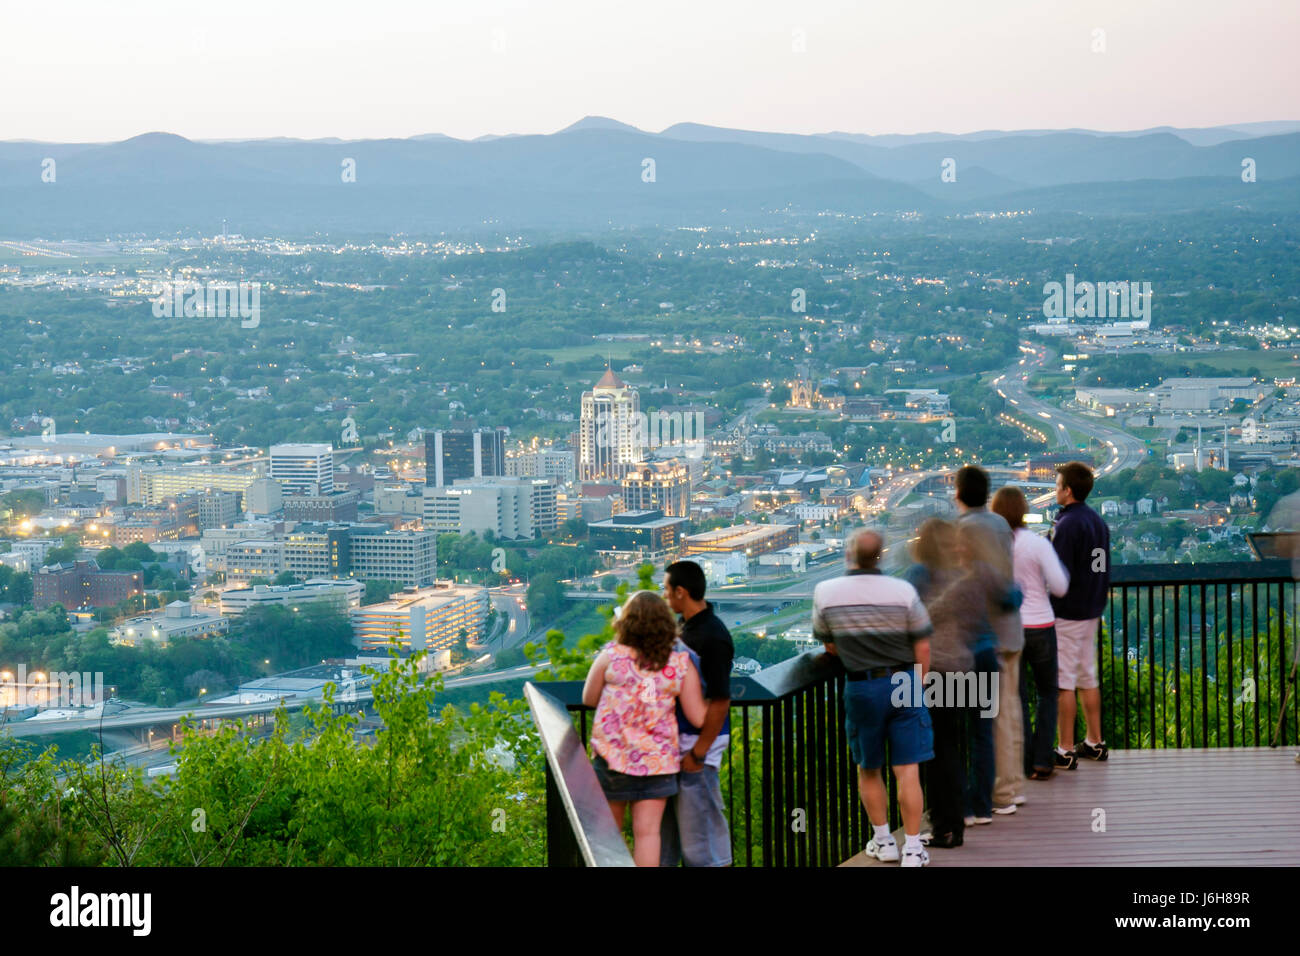 Virginia Roanoke Mill Mountain Overlook man woman couple families view downtown city dusk evening Allegheny Mountains - Stock Image